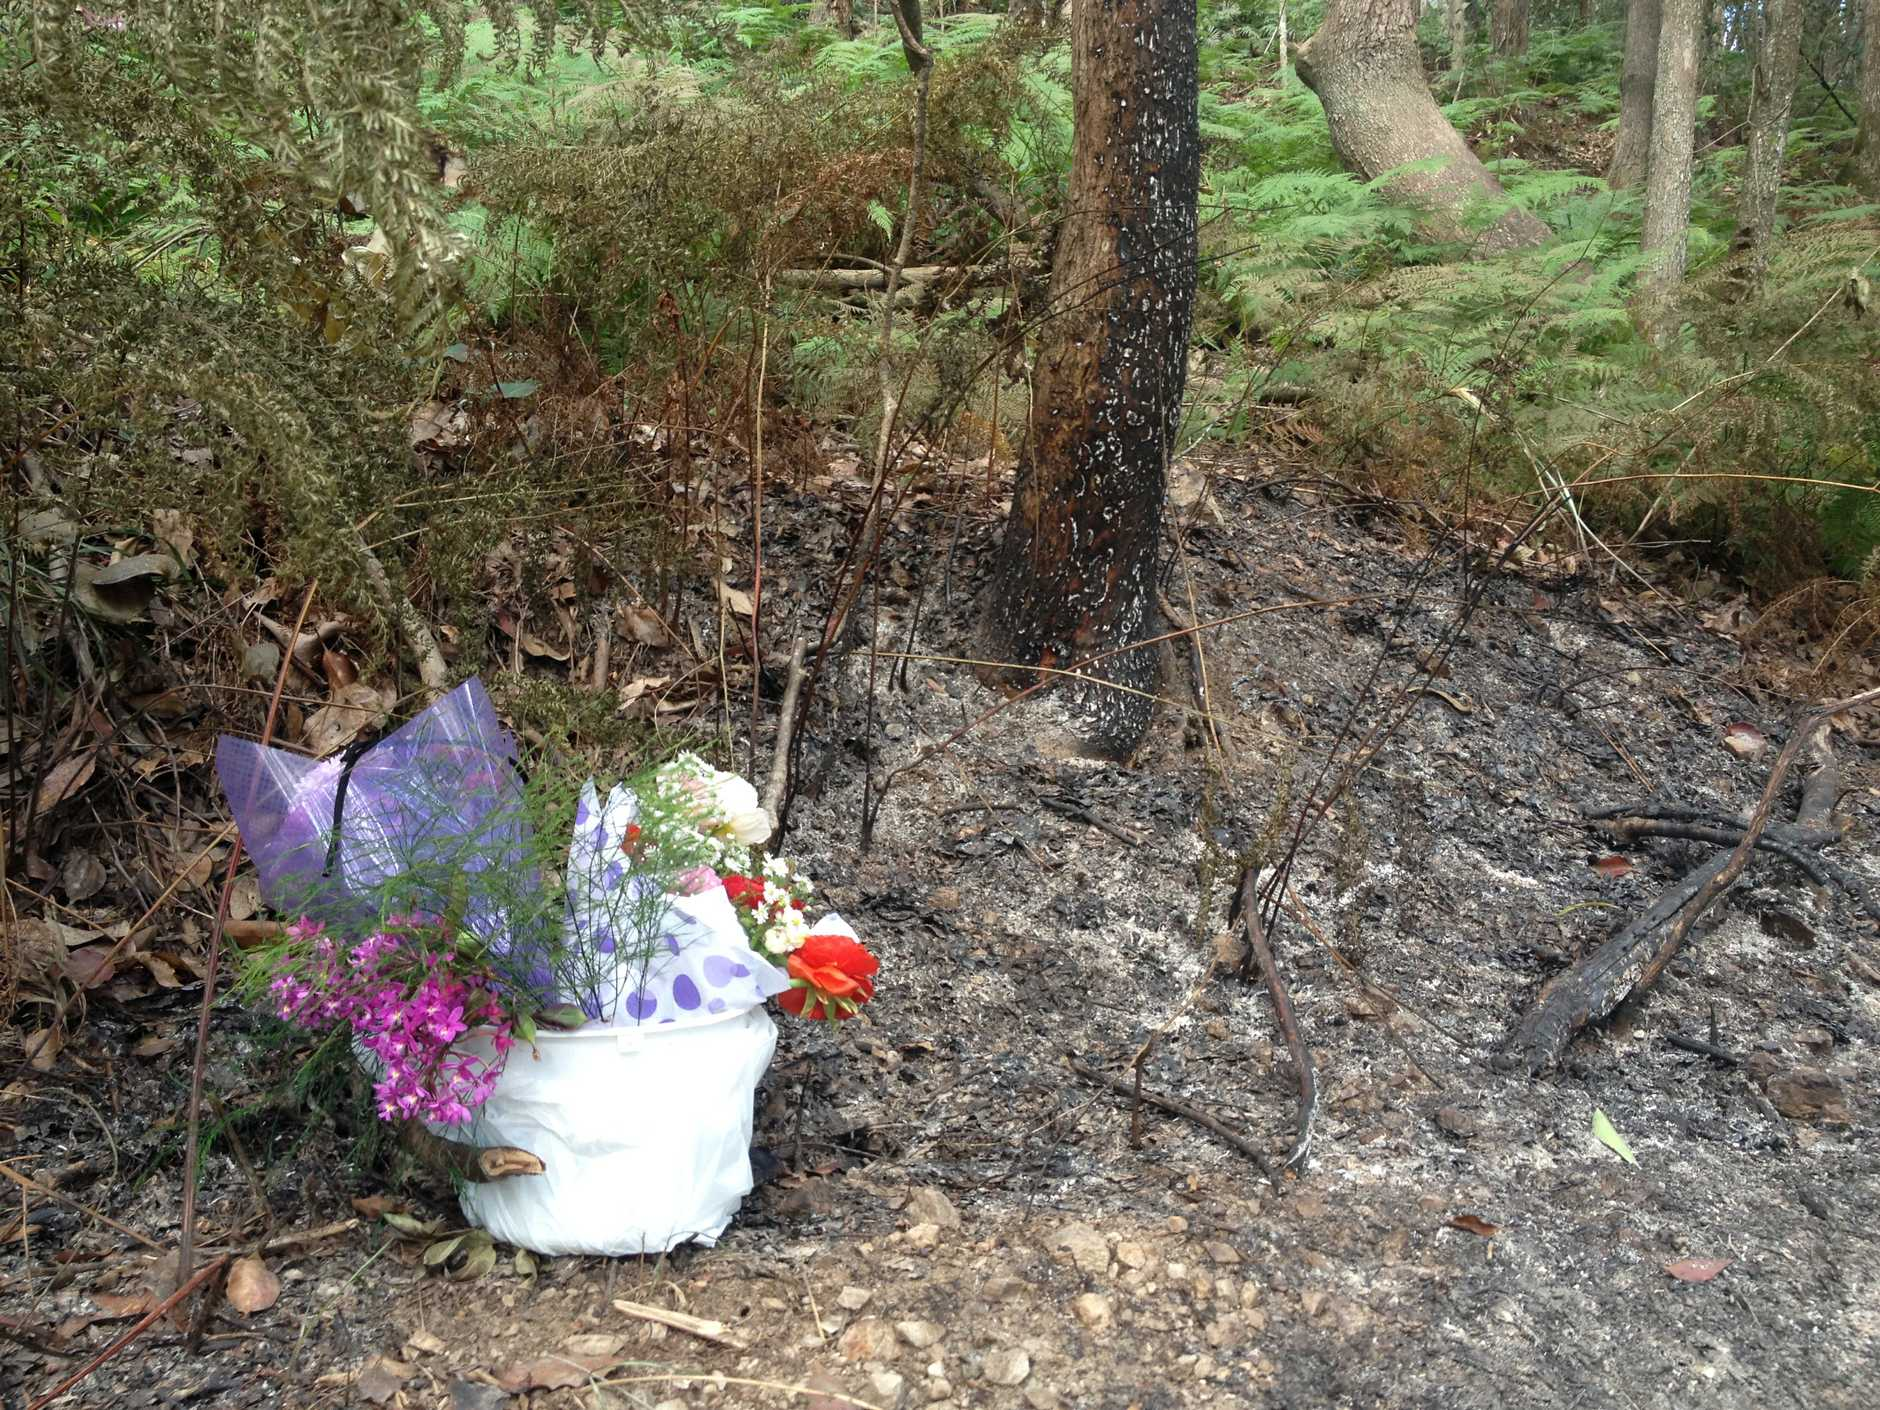 Flowers have been left at the tragic site of Sabrina Bremer's suspected homicide.